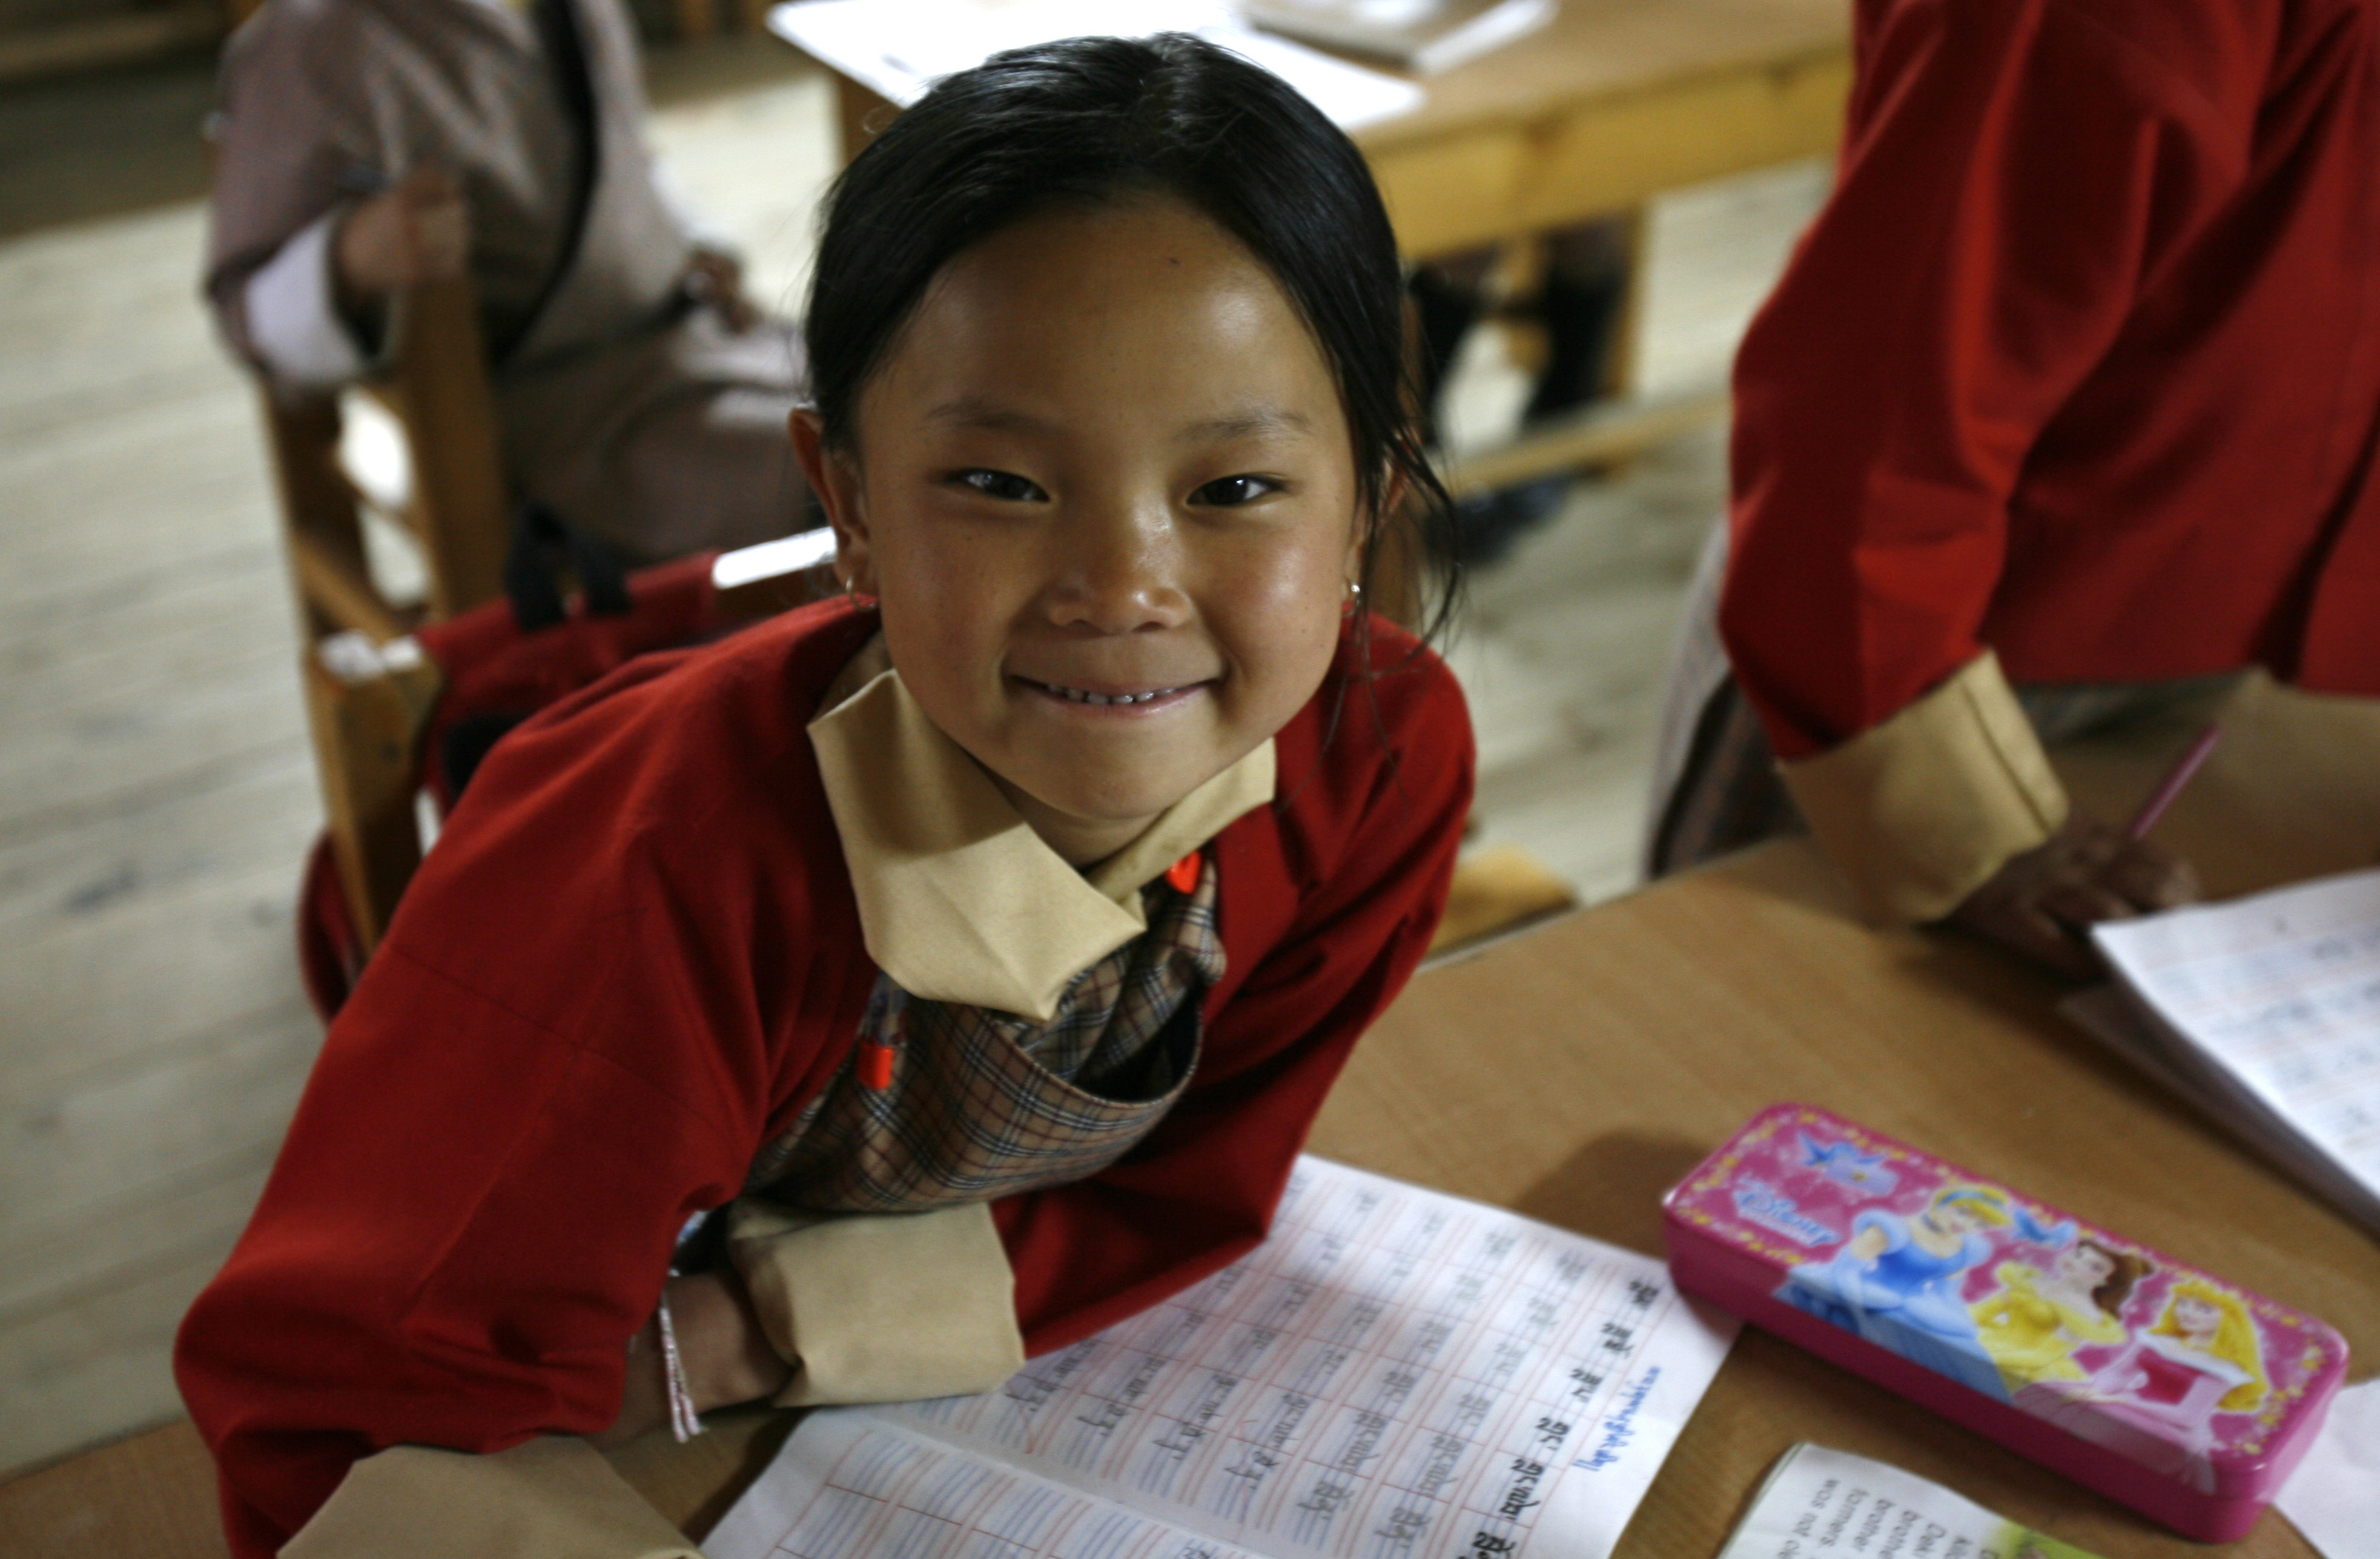 Advocating girl friendly boarding schools in bhutan toward advocating girl friendly boarding schools in bhutan toward improving quality learning opportunities and outcomes for bhutanese girls malvernweather Images